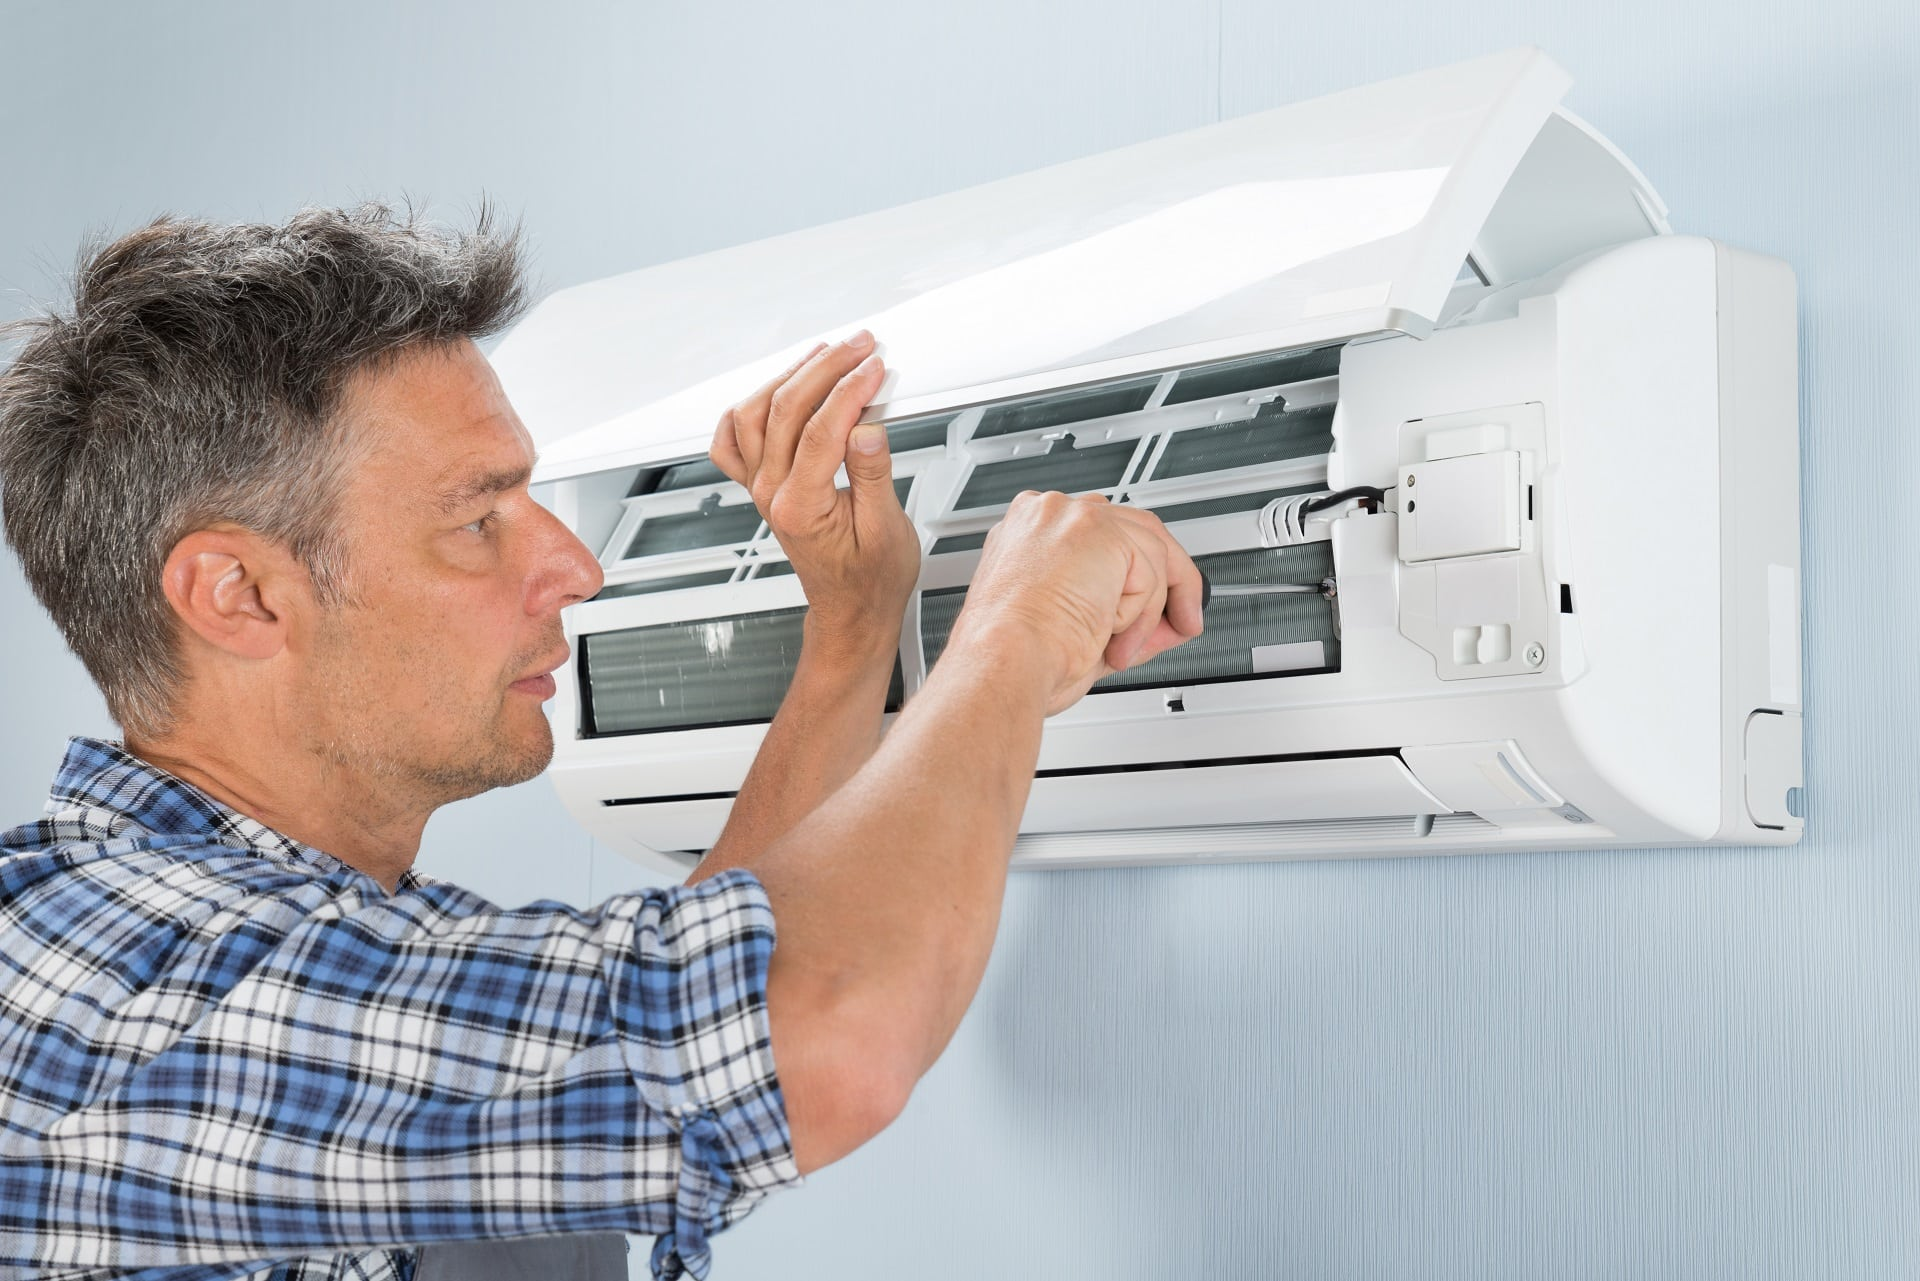 AC repair service in South Florida